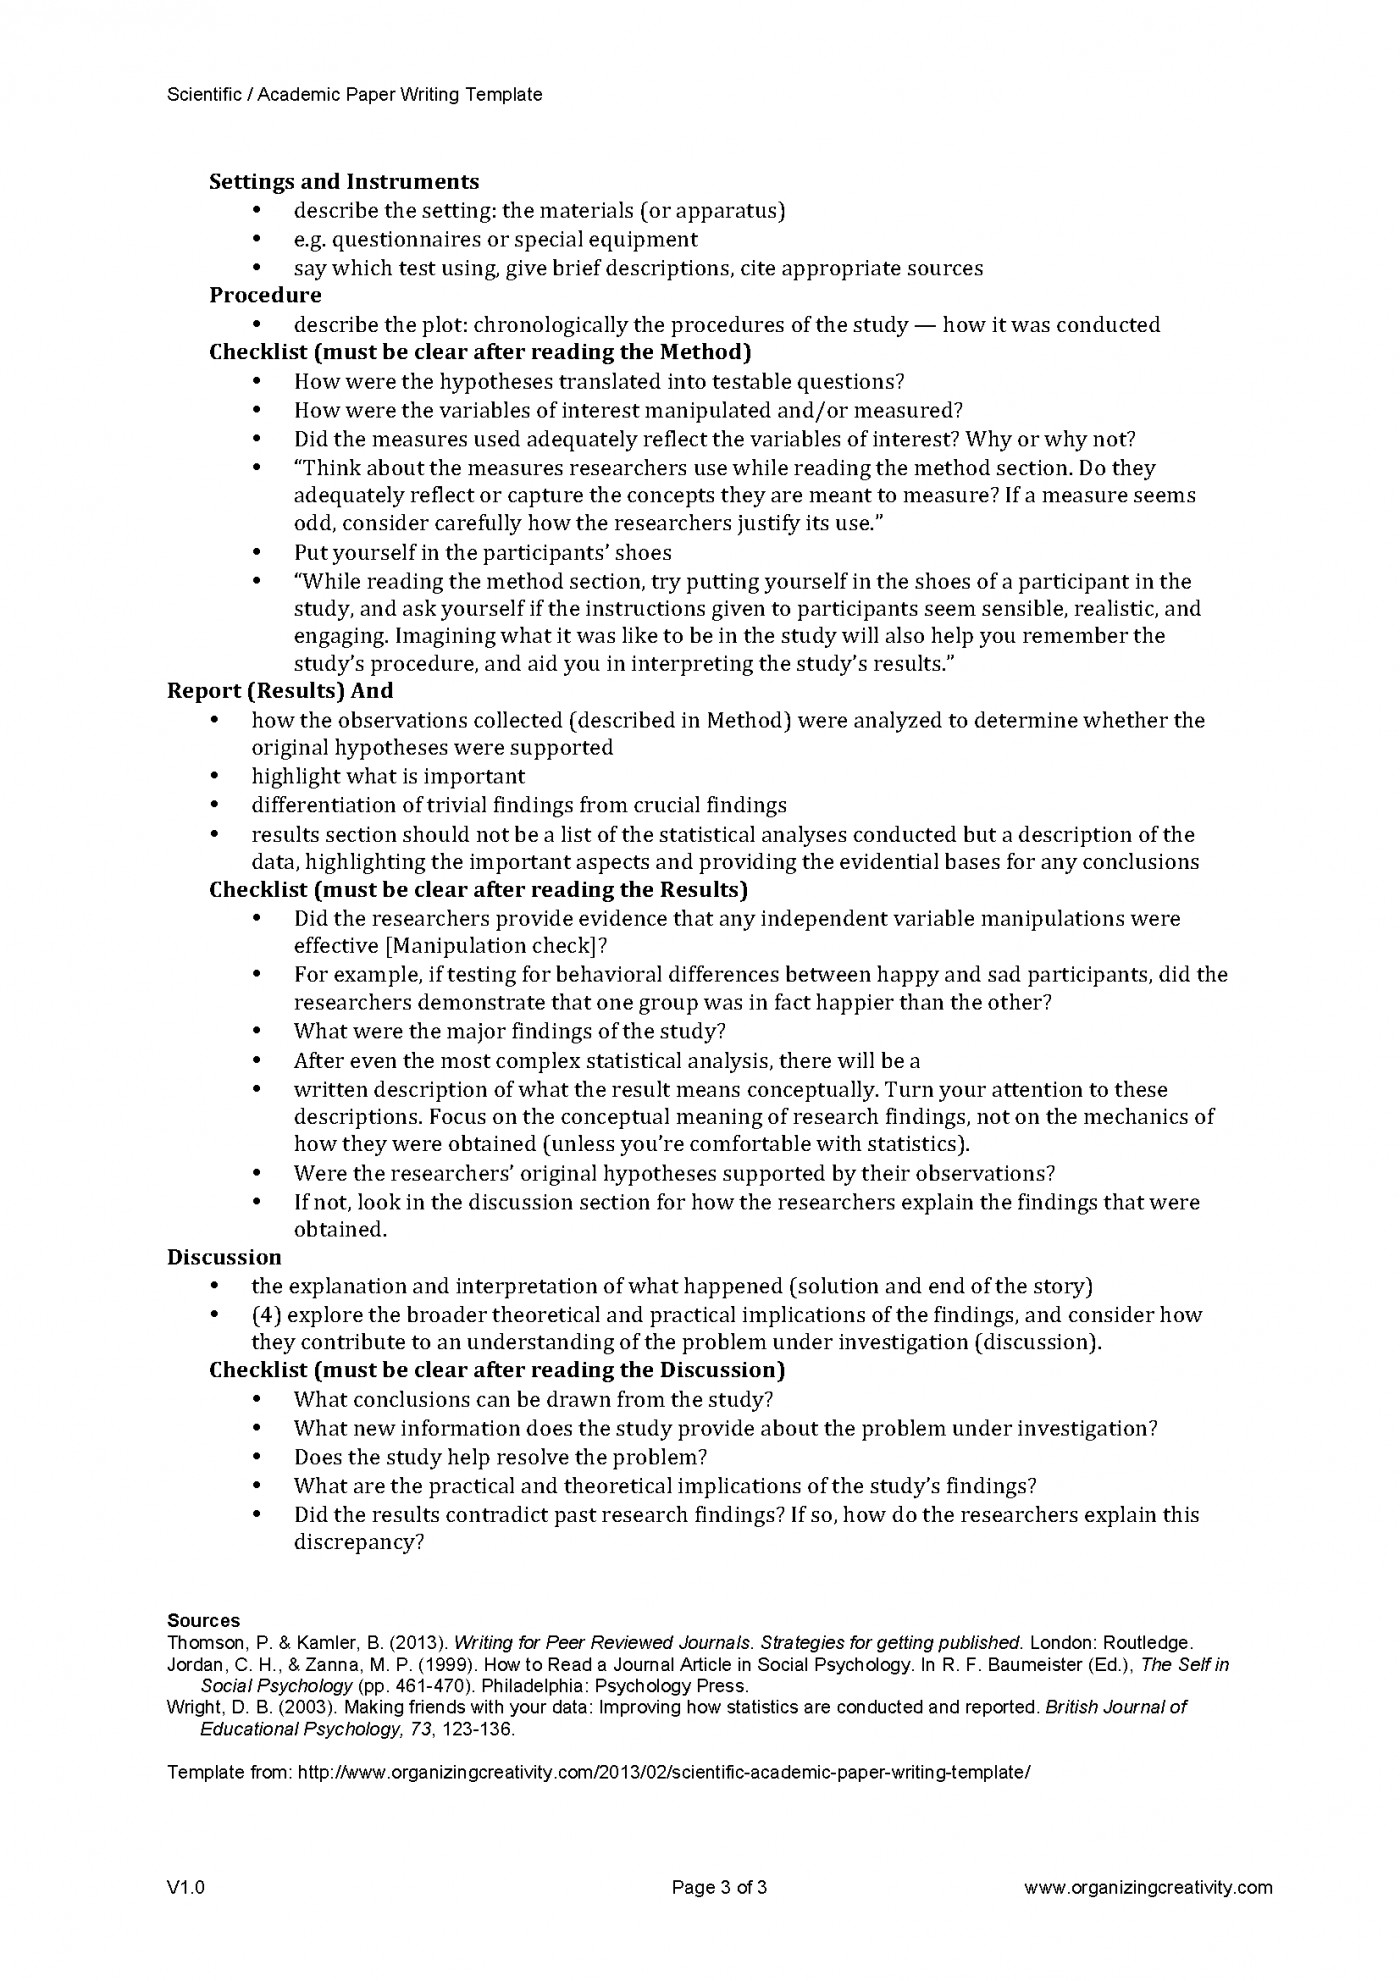 013 Research Paper Scientific Academic Writing Template Page 3 Methods Unique Outline Method 1400